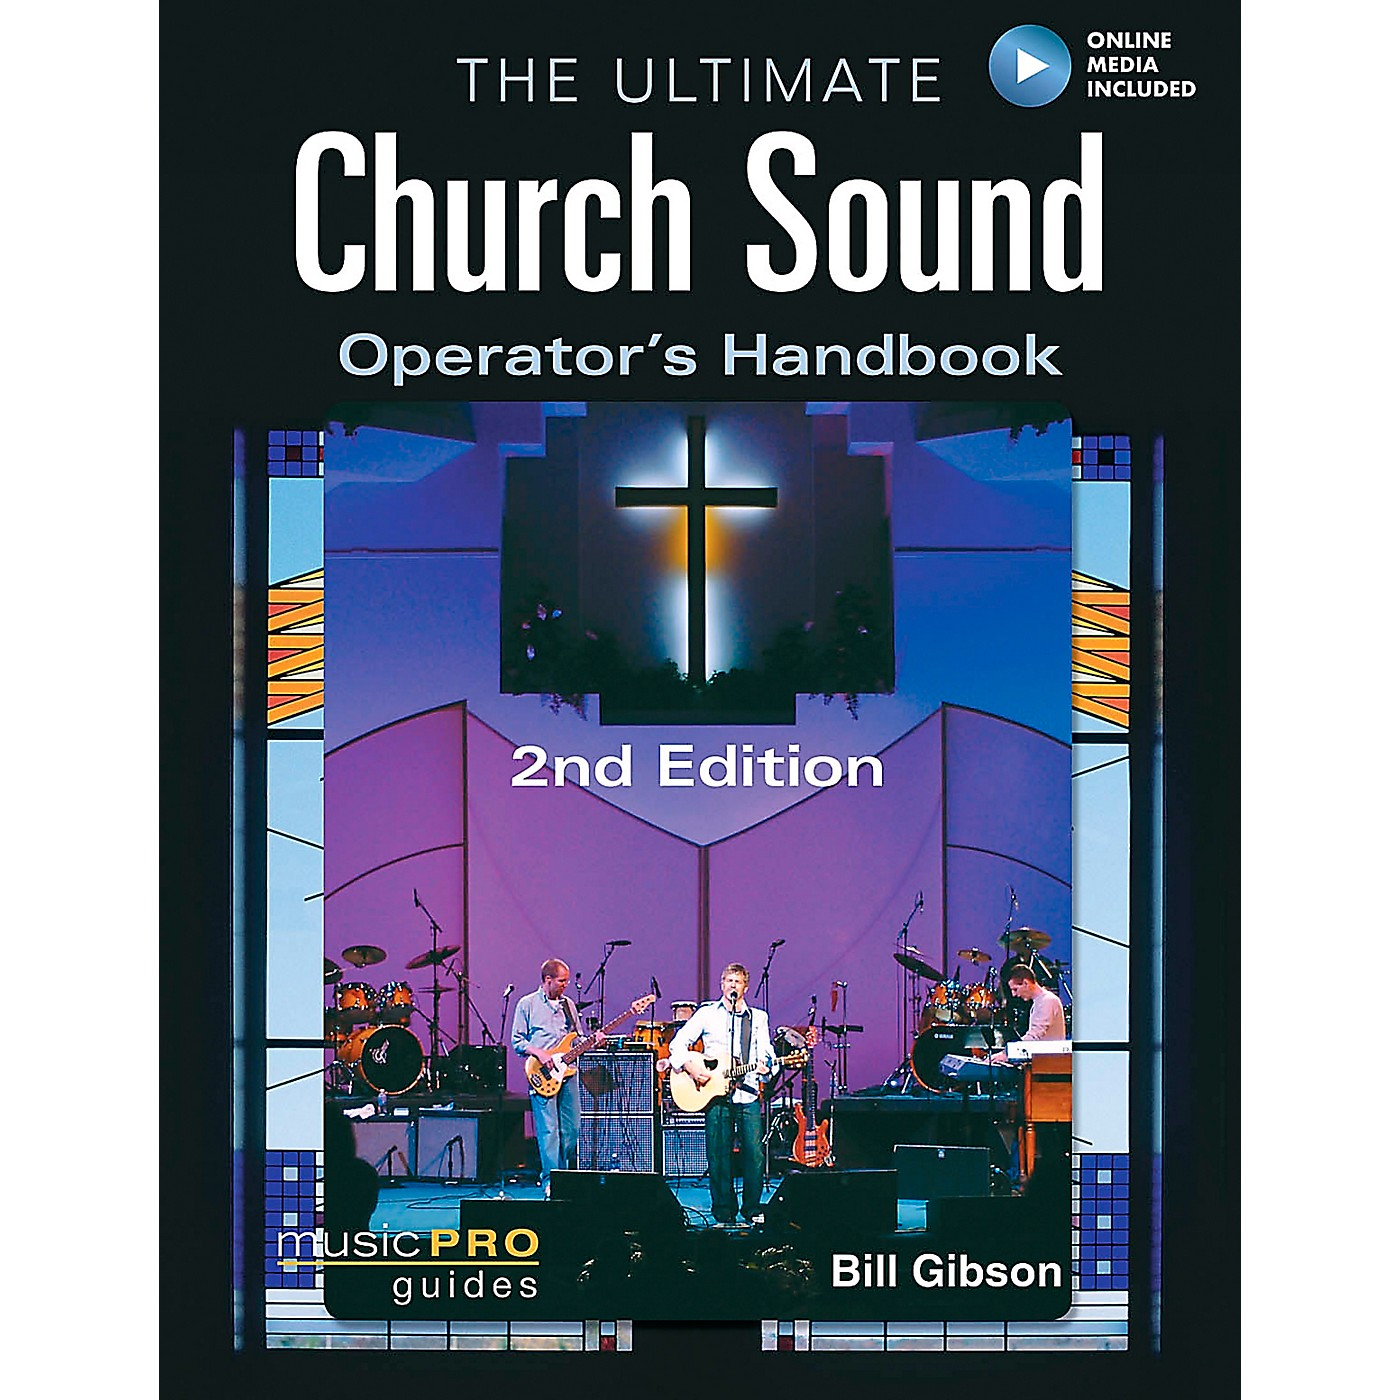 Hal Leonard The Ultimate Church Sound Operator's Handbook (Book/Online Media) thumbnail